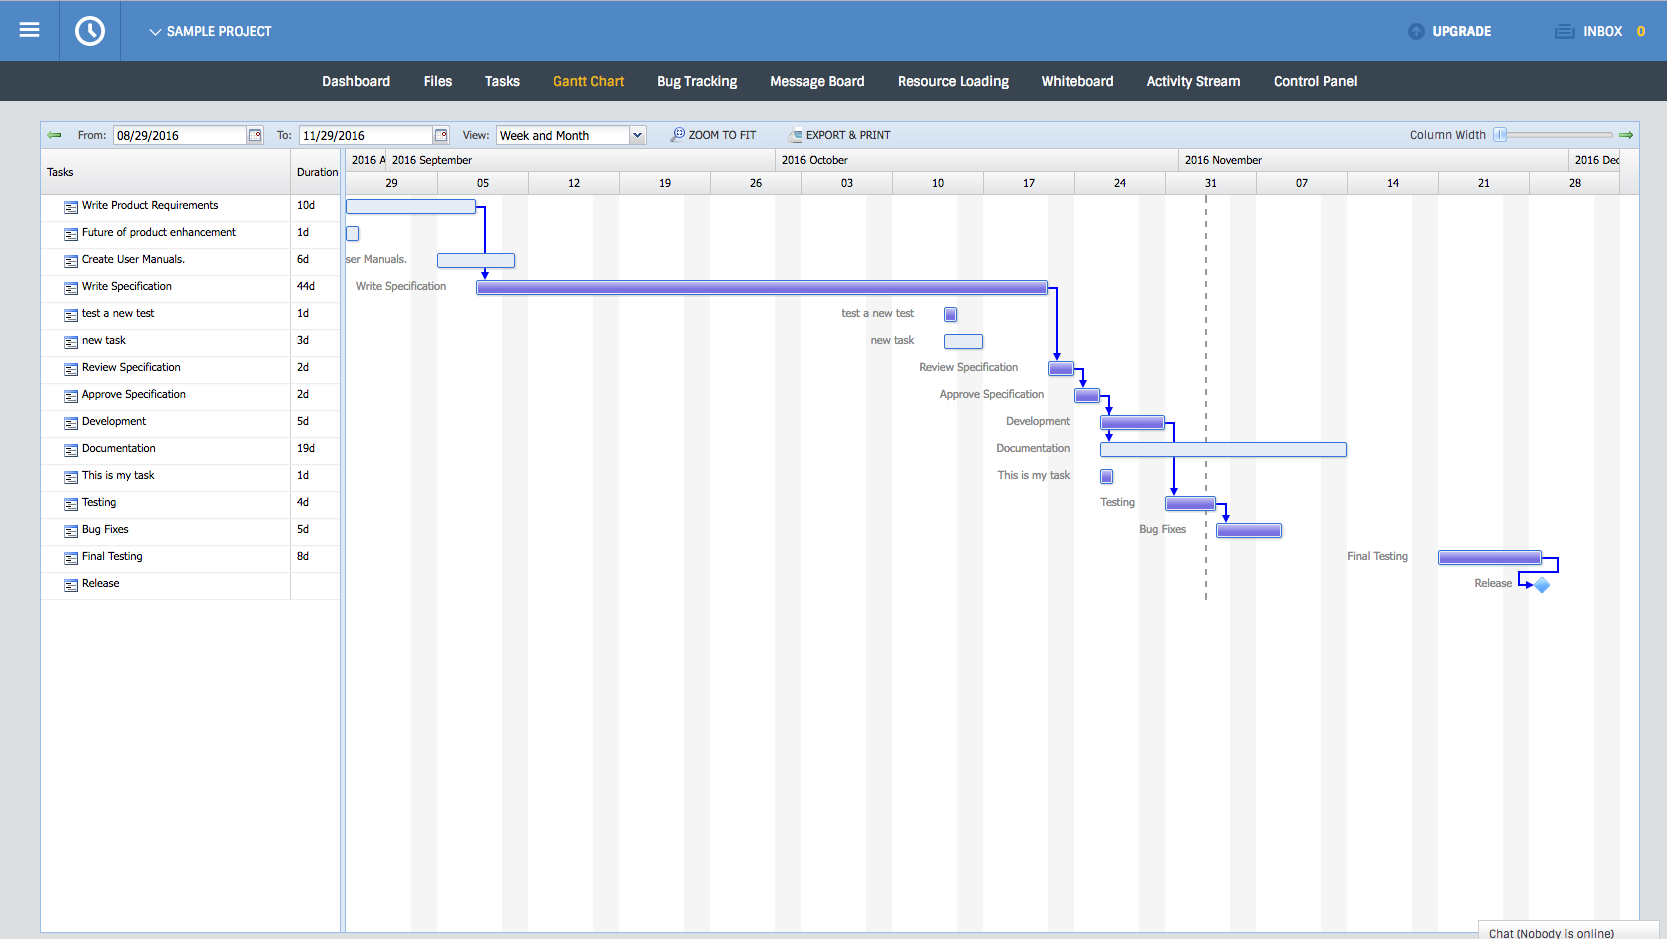 Gantt Chart page screenshot